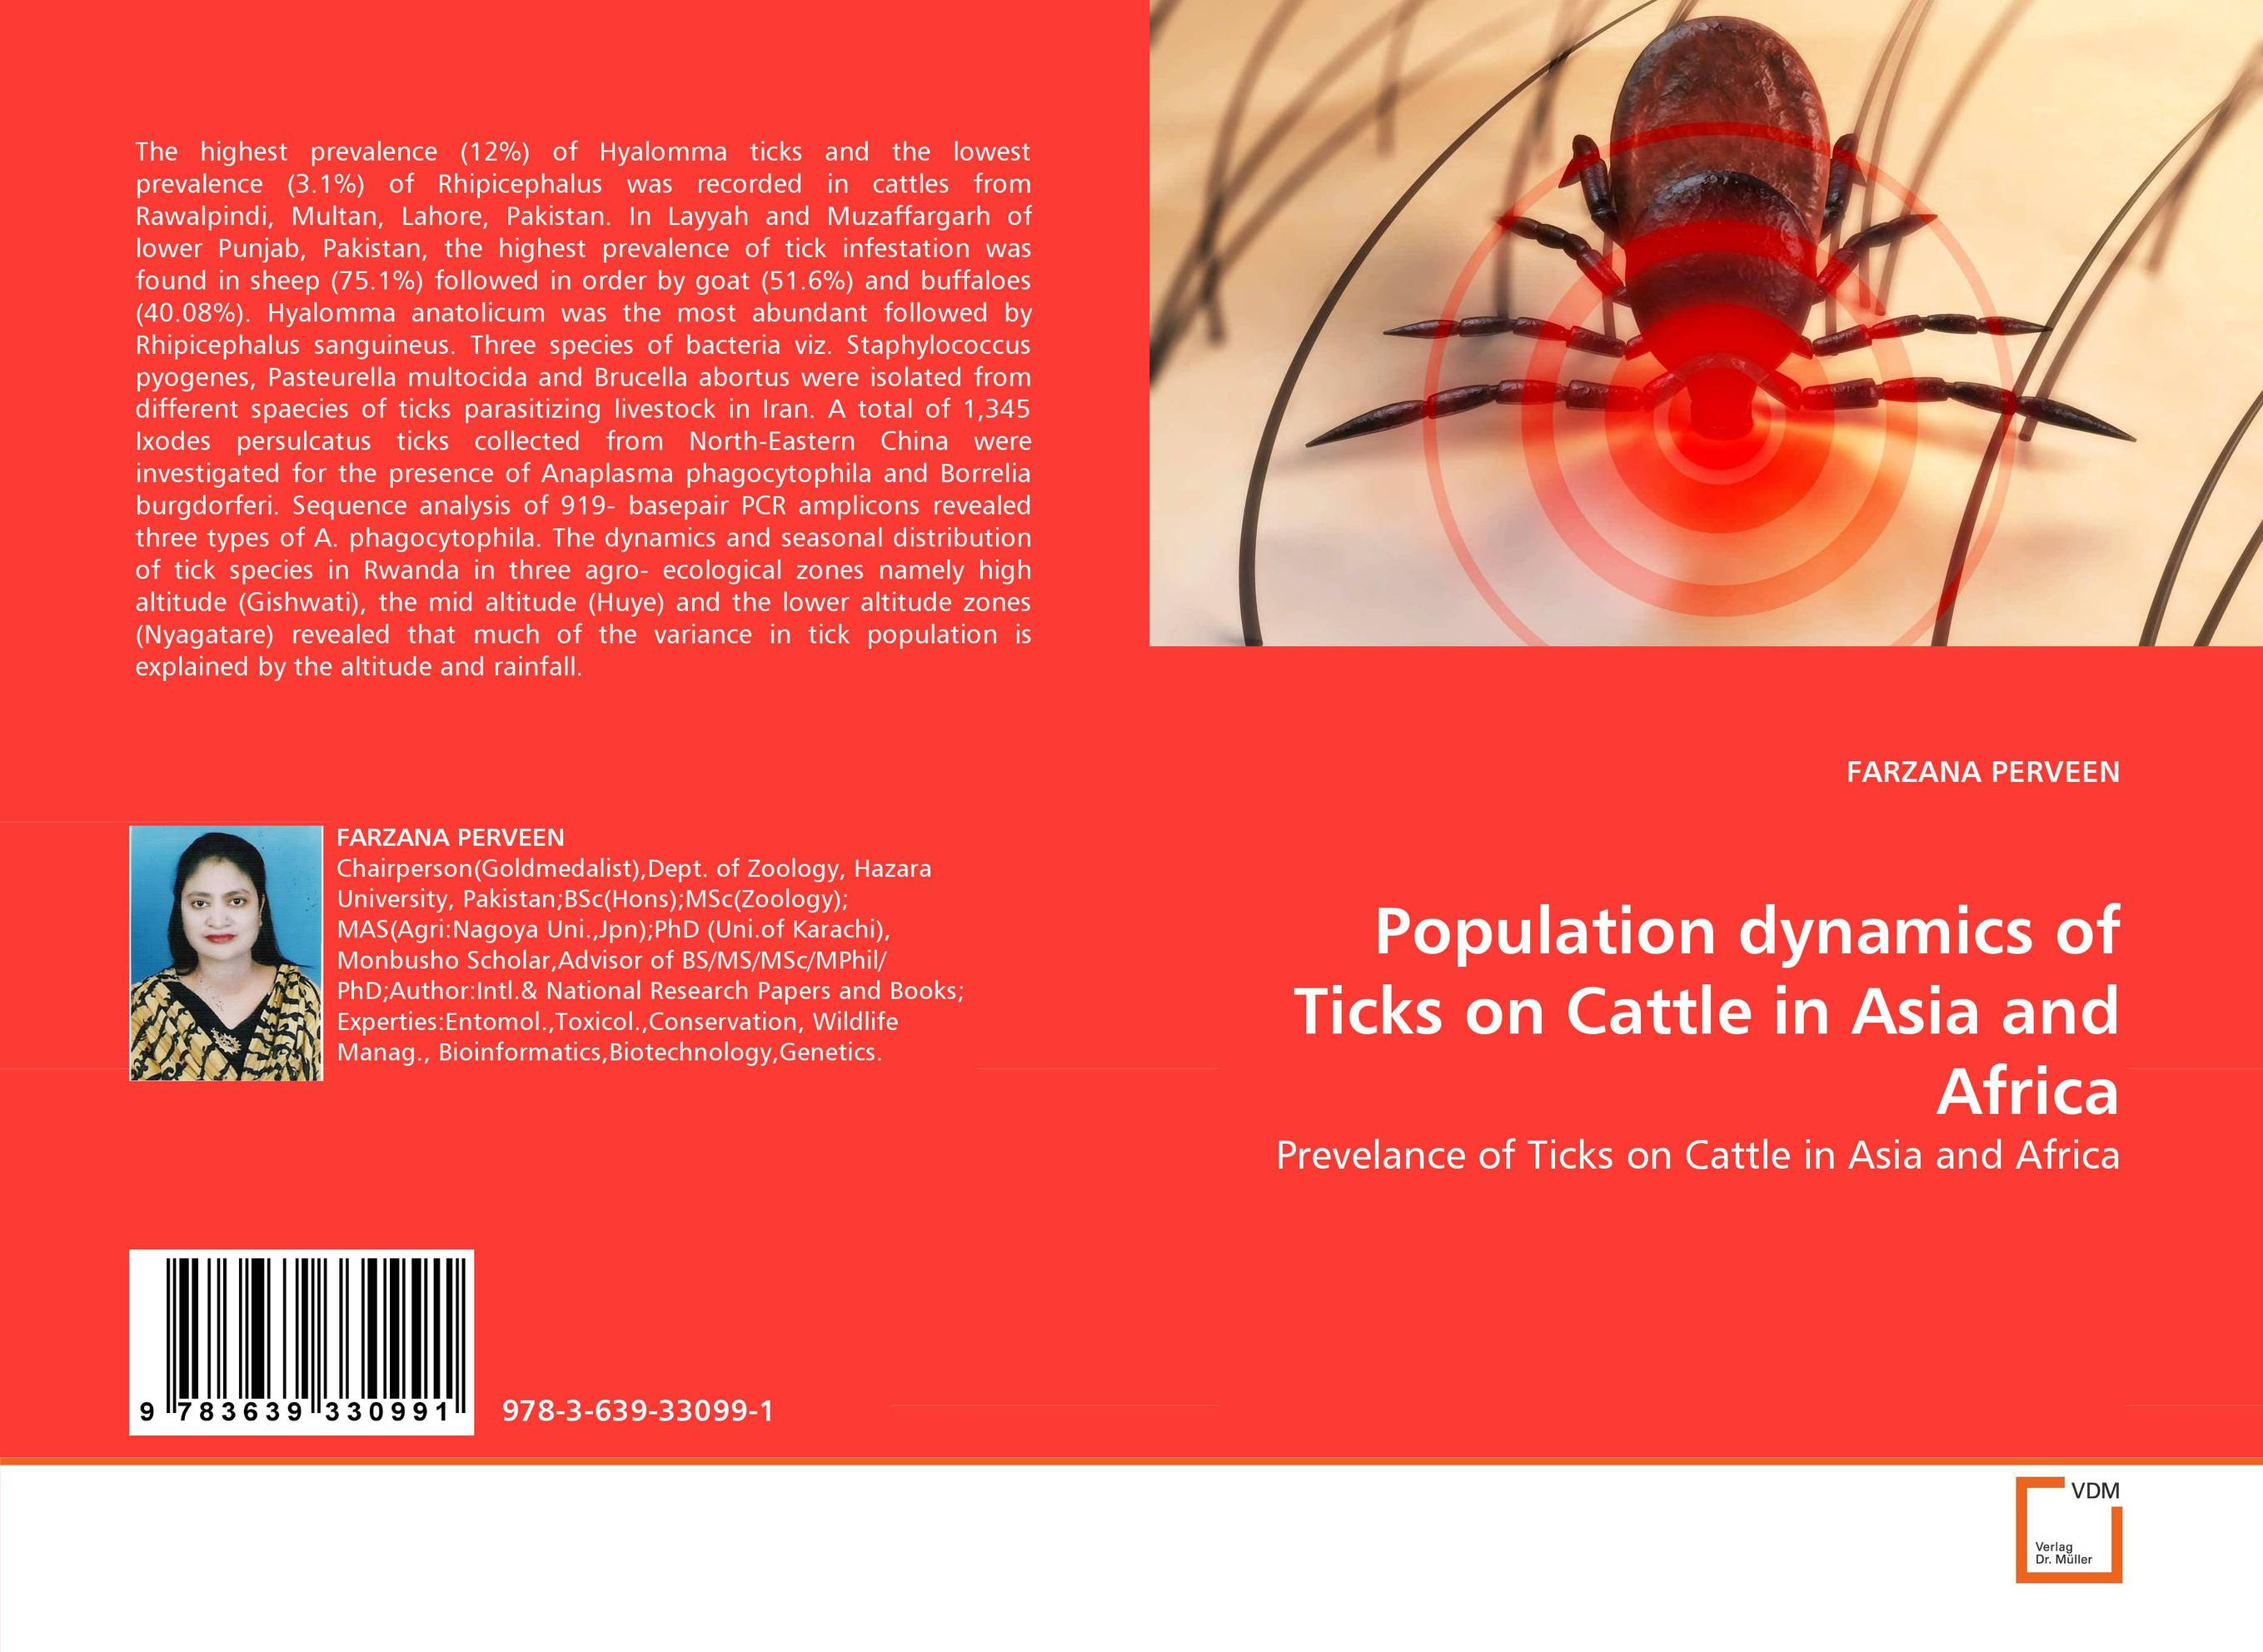 Population dynamics of Ticks on Cattle in Asia and Africa